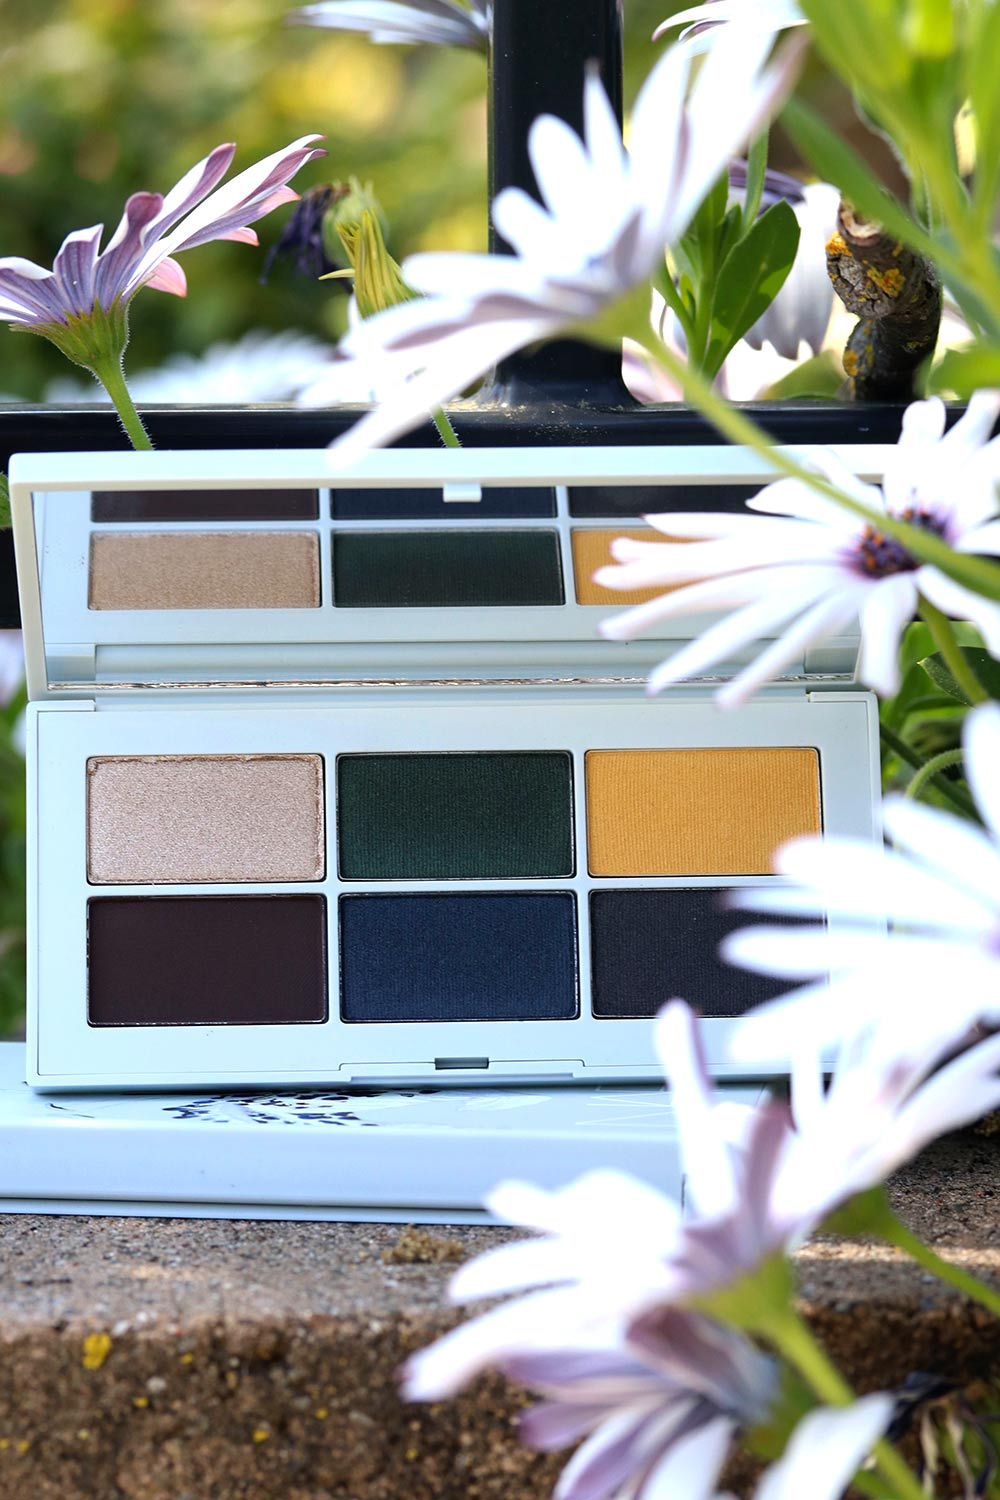 nars night garden eyeshadow palette